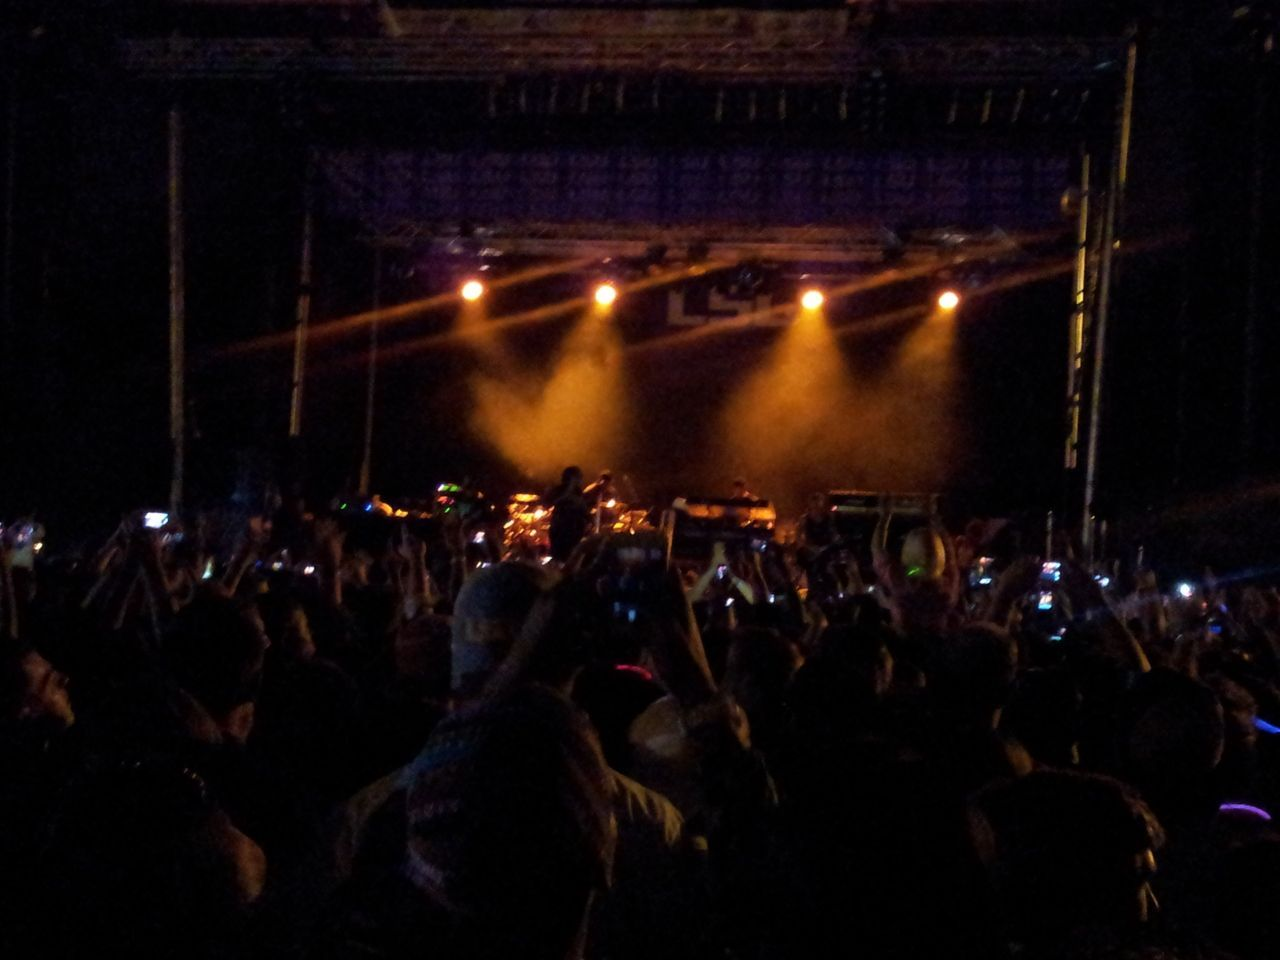 Lupe Fiasco played at LSU for Groovin' on the Grounds last night.